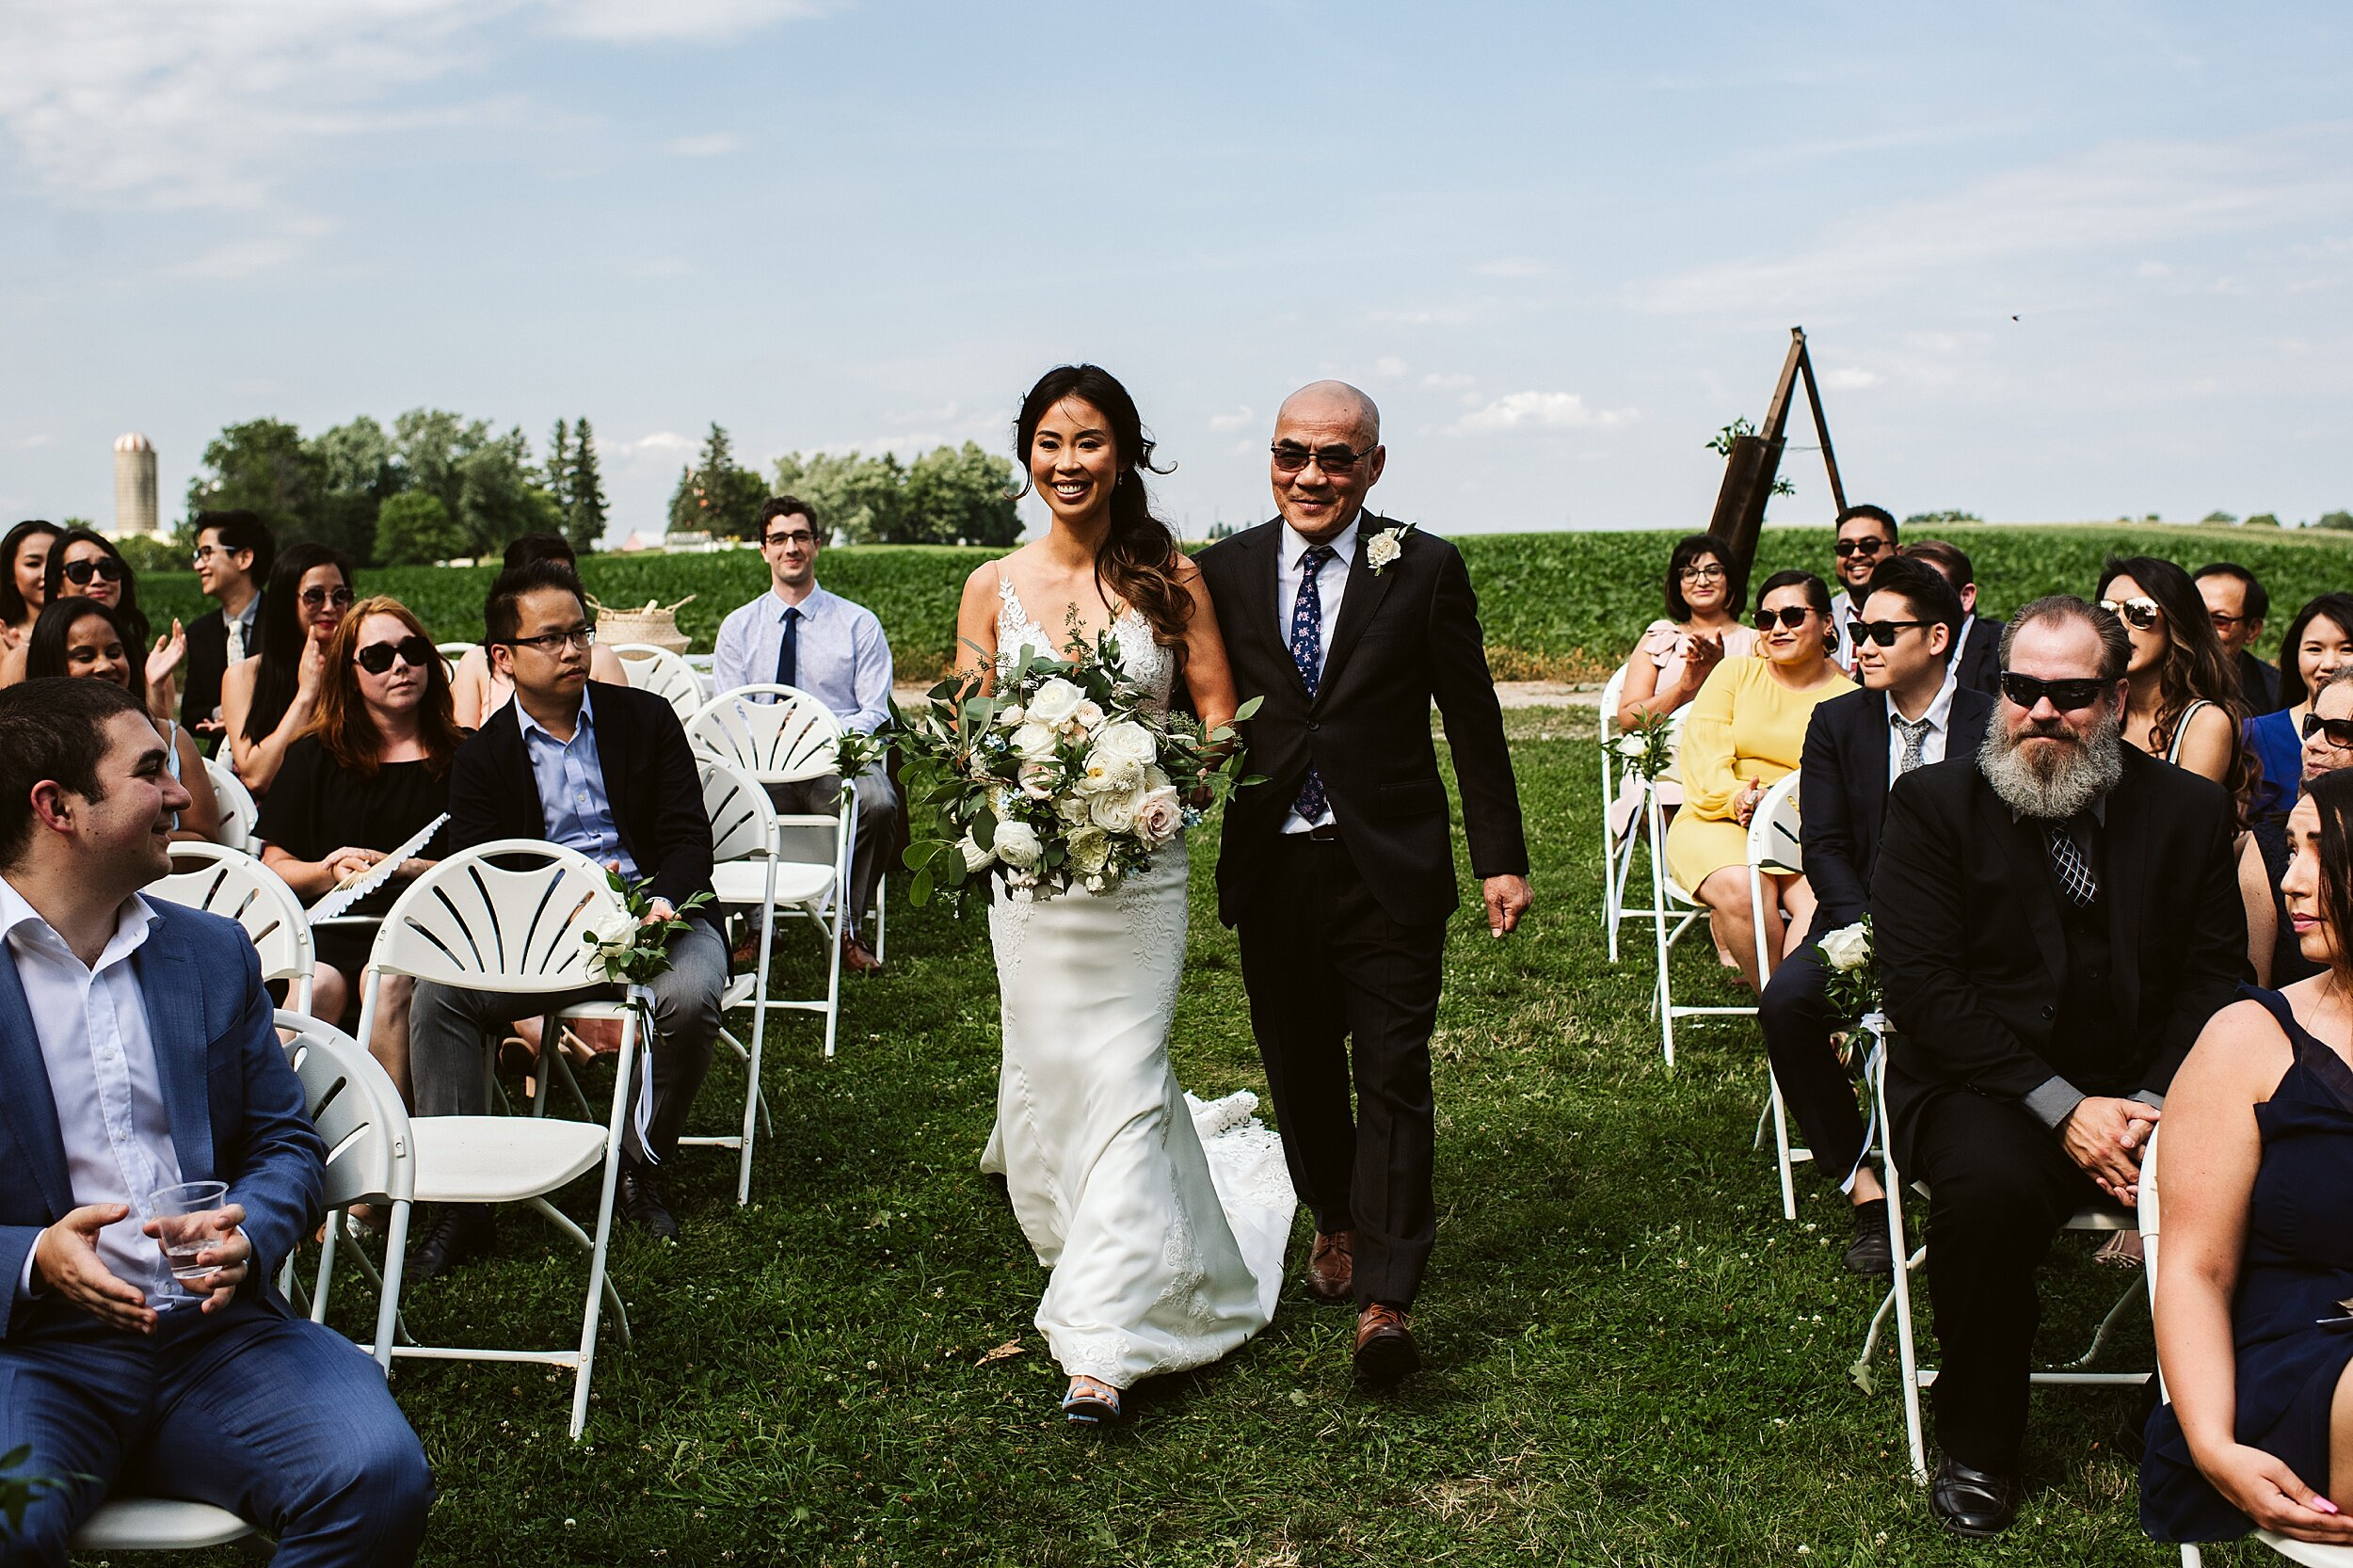 Glen_Drummon_Farm_Wedding_Toronto_Photographers_Fox_Photography_Dyments_0028.jpg